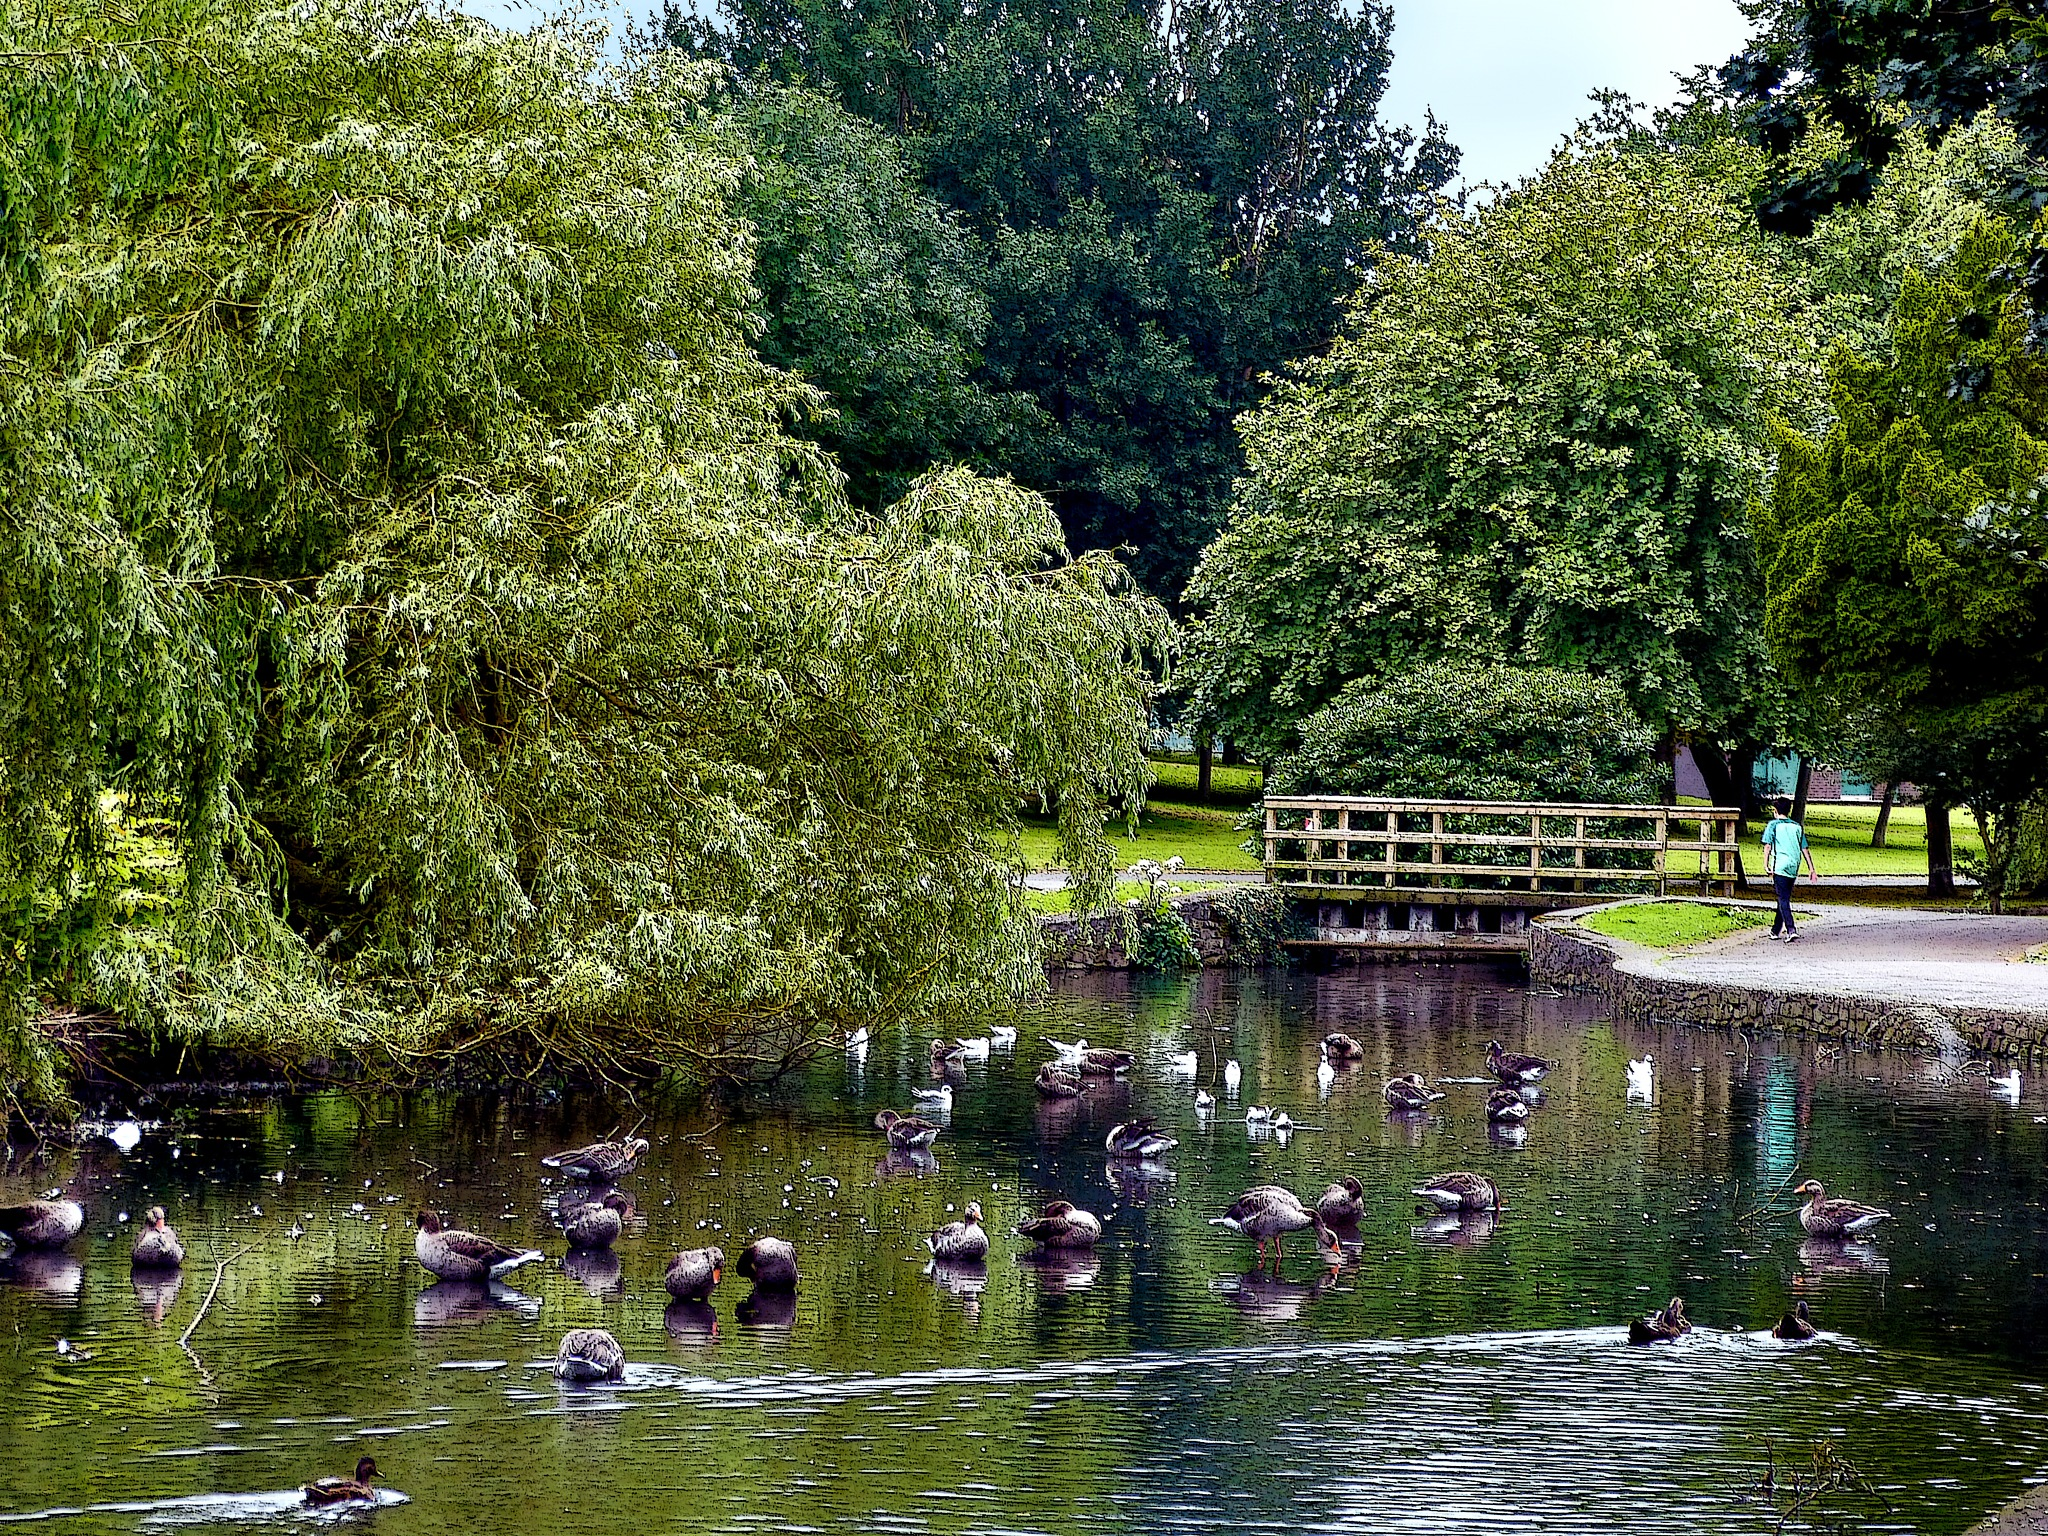 Duck Pond by PeterMChambers